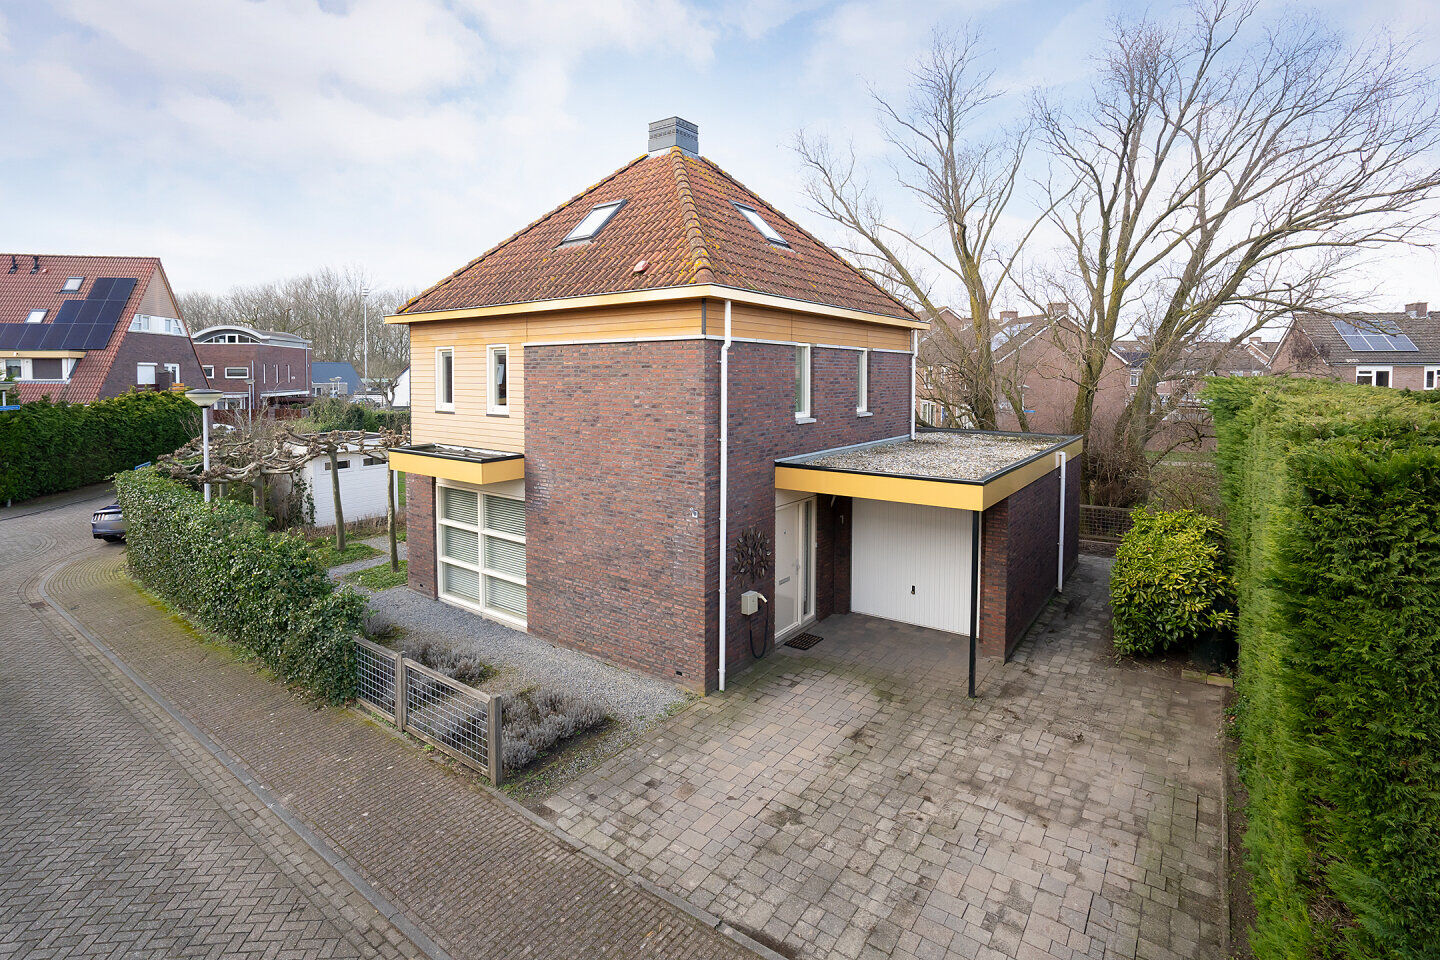 37157-jan_de_preestraat_1-steenbergen-596695571